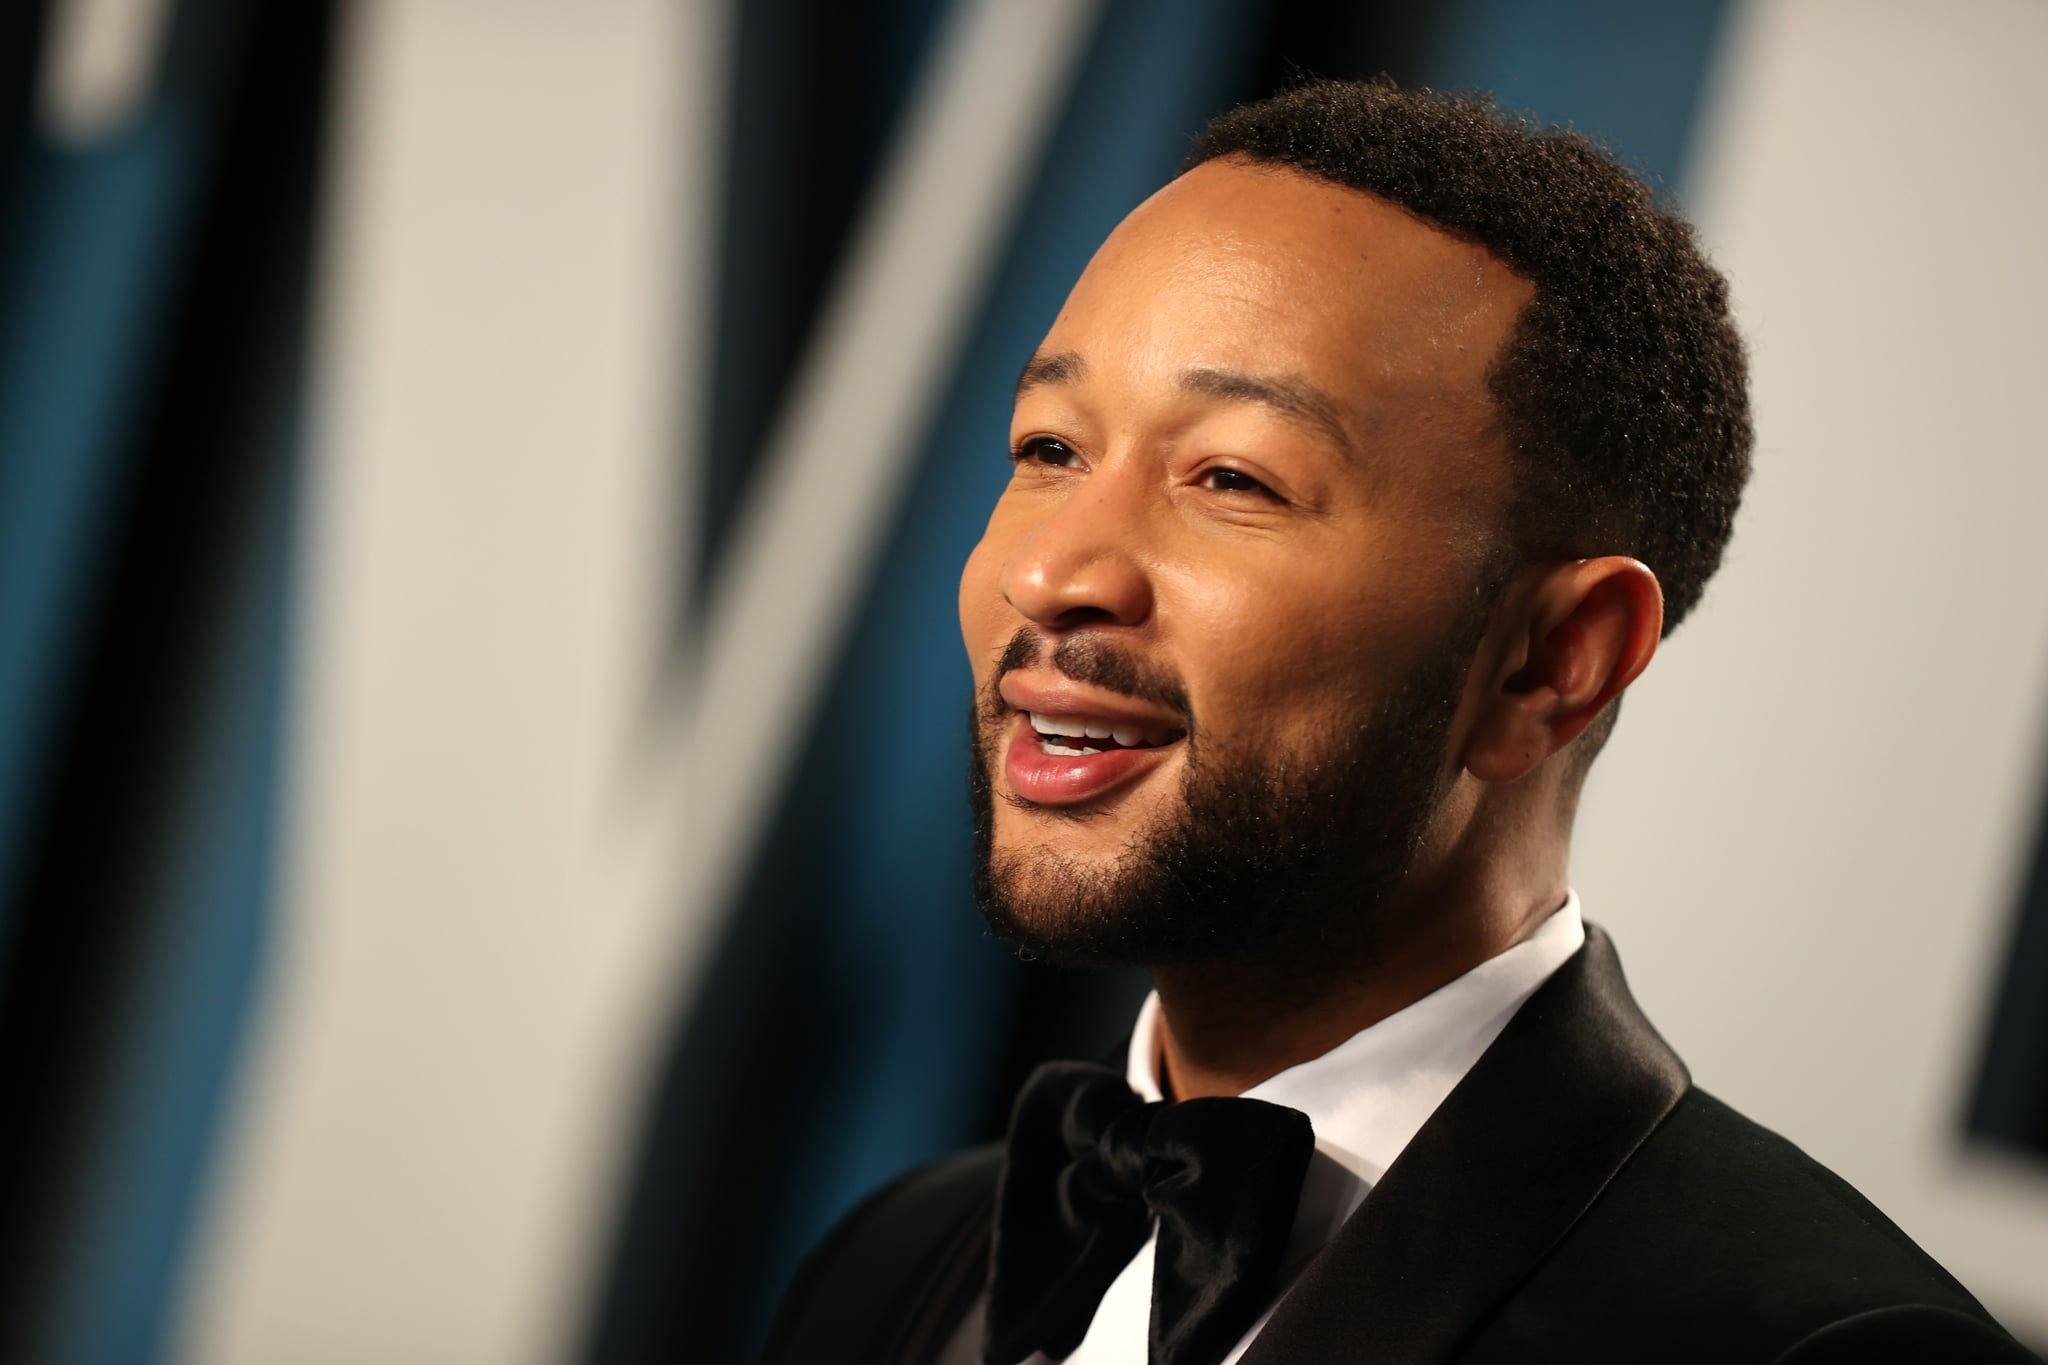 BEVERLY HILLS, CALIFORNIA - FEBRUARY 09: John Legend attends the 2020 Vanity Fair Oscar Party hosted by Radhika Jones at Wallis Annenberg Centre for the Performing Arts on February 09, 2020 in Beverly Hills, California. (Photo by Rich Fury/VF20/Getty Images for Vanity Fair)